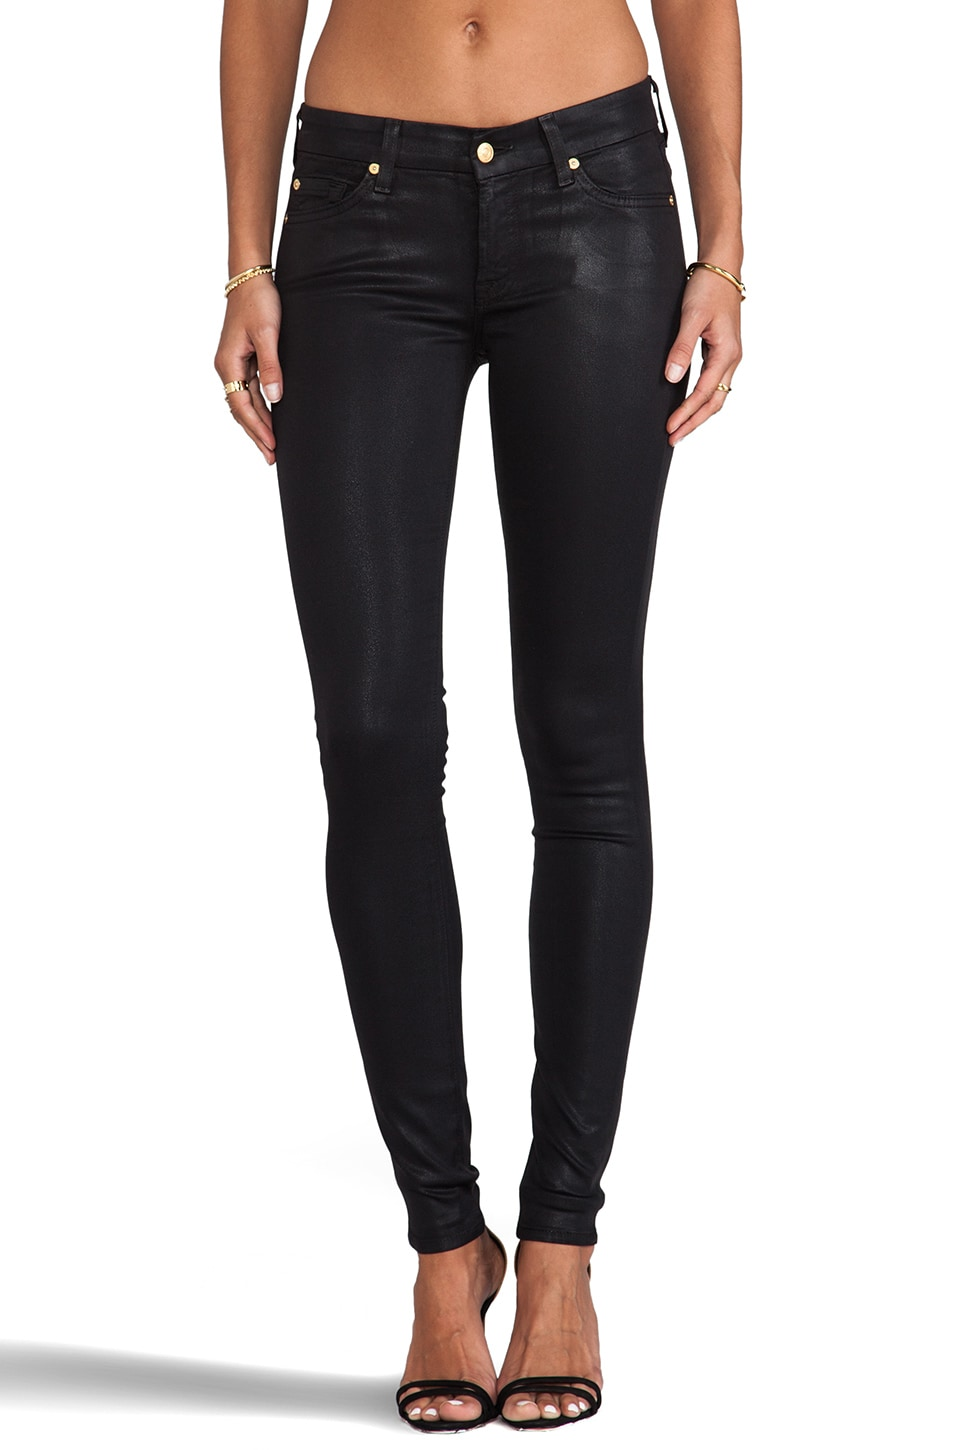 7 For All Mankind The High Gloss Skinny in High Shine Black